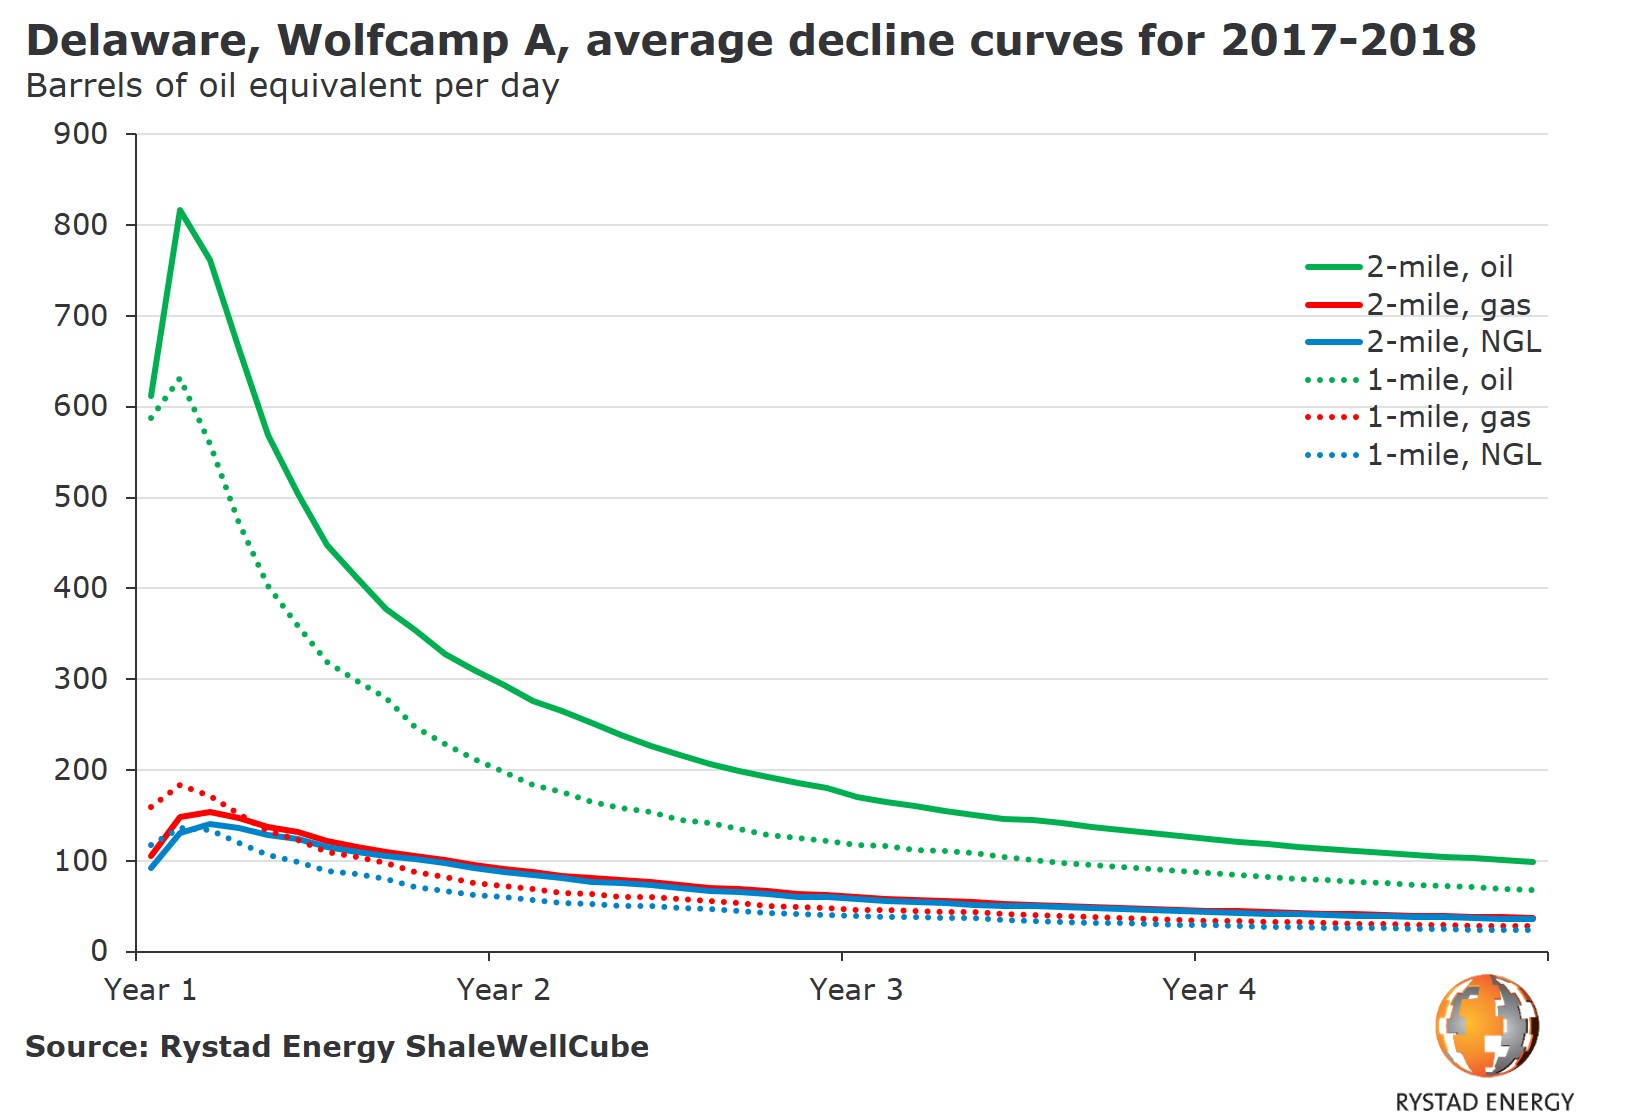 A graph showing Delaware, Wolfcamp A, average decline curves for 2017-2018 in barrels of oil equivalent per day. Source: Rystad Energy ShaleWellCube